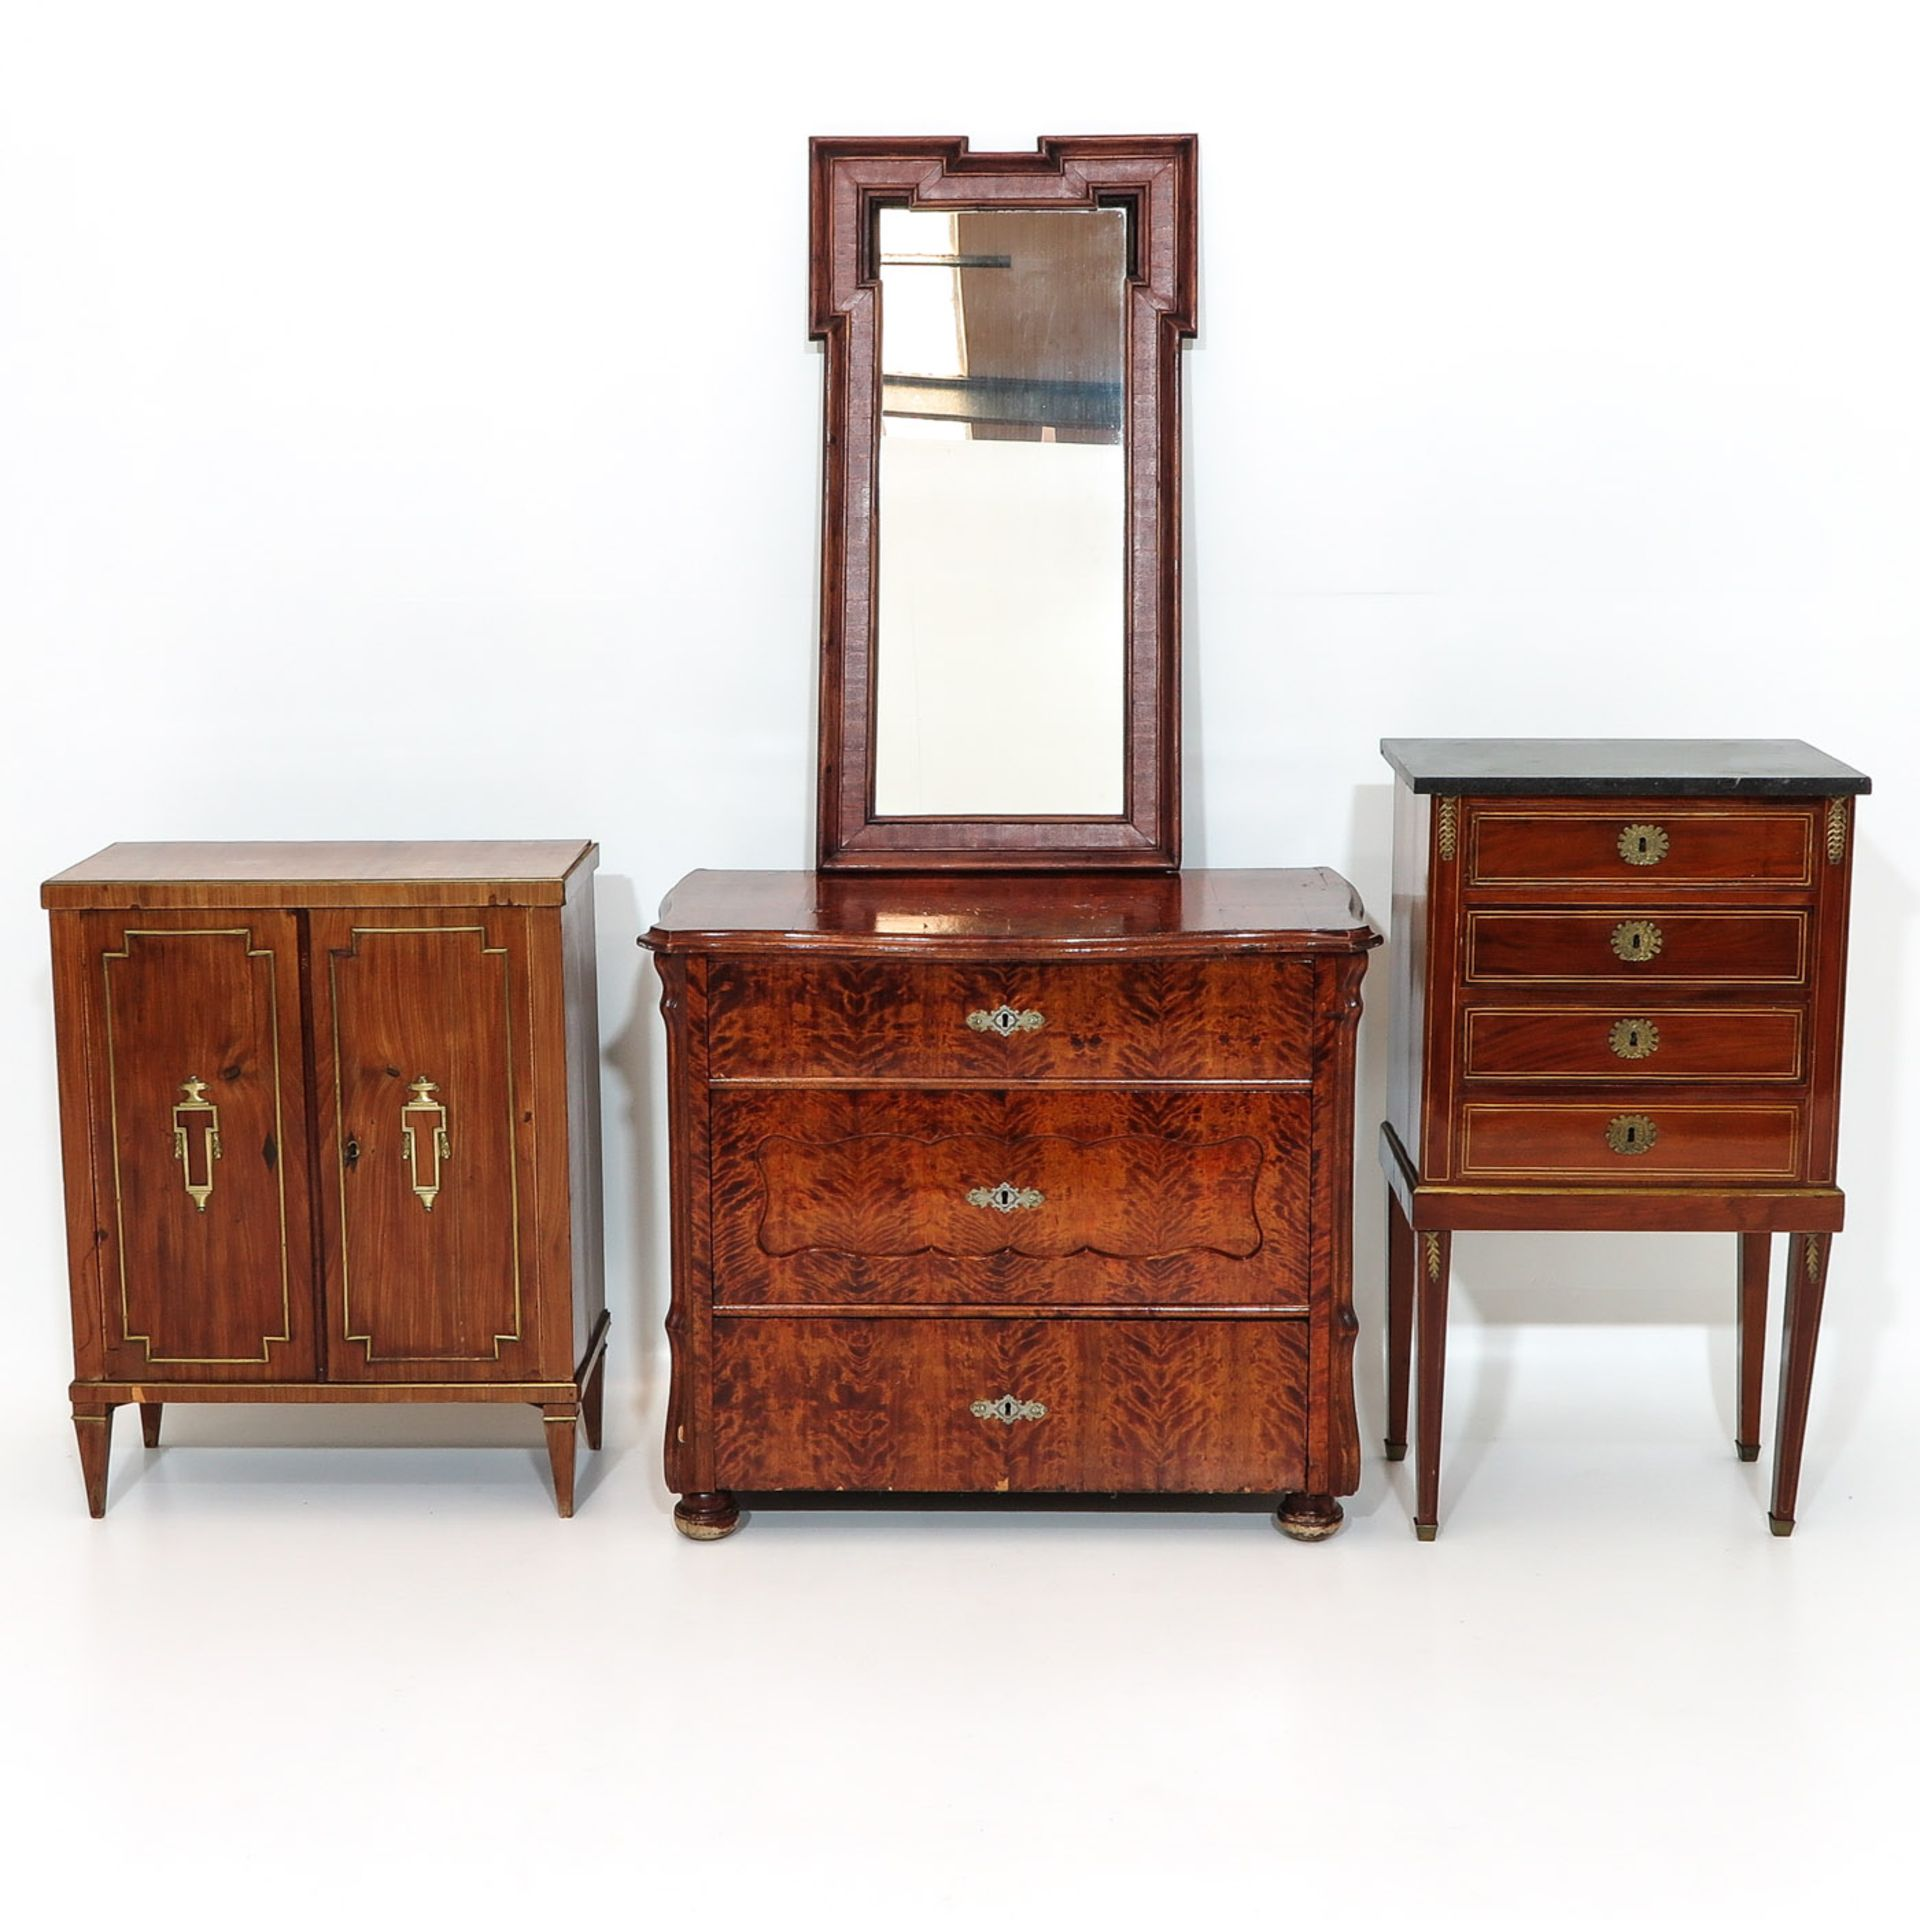 Los 1114 - A Diverse Collection of Antique Furniture